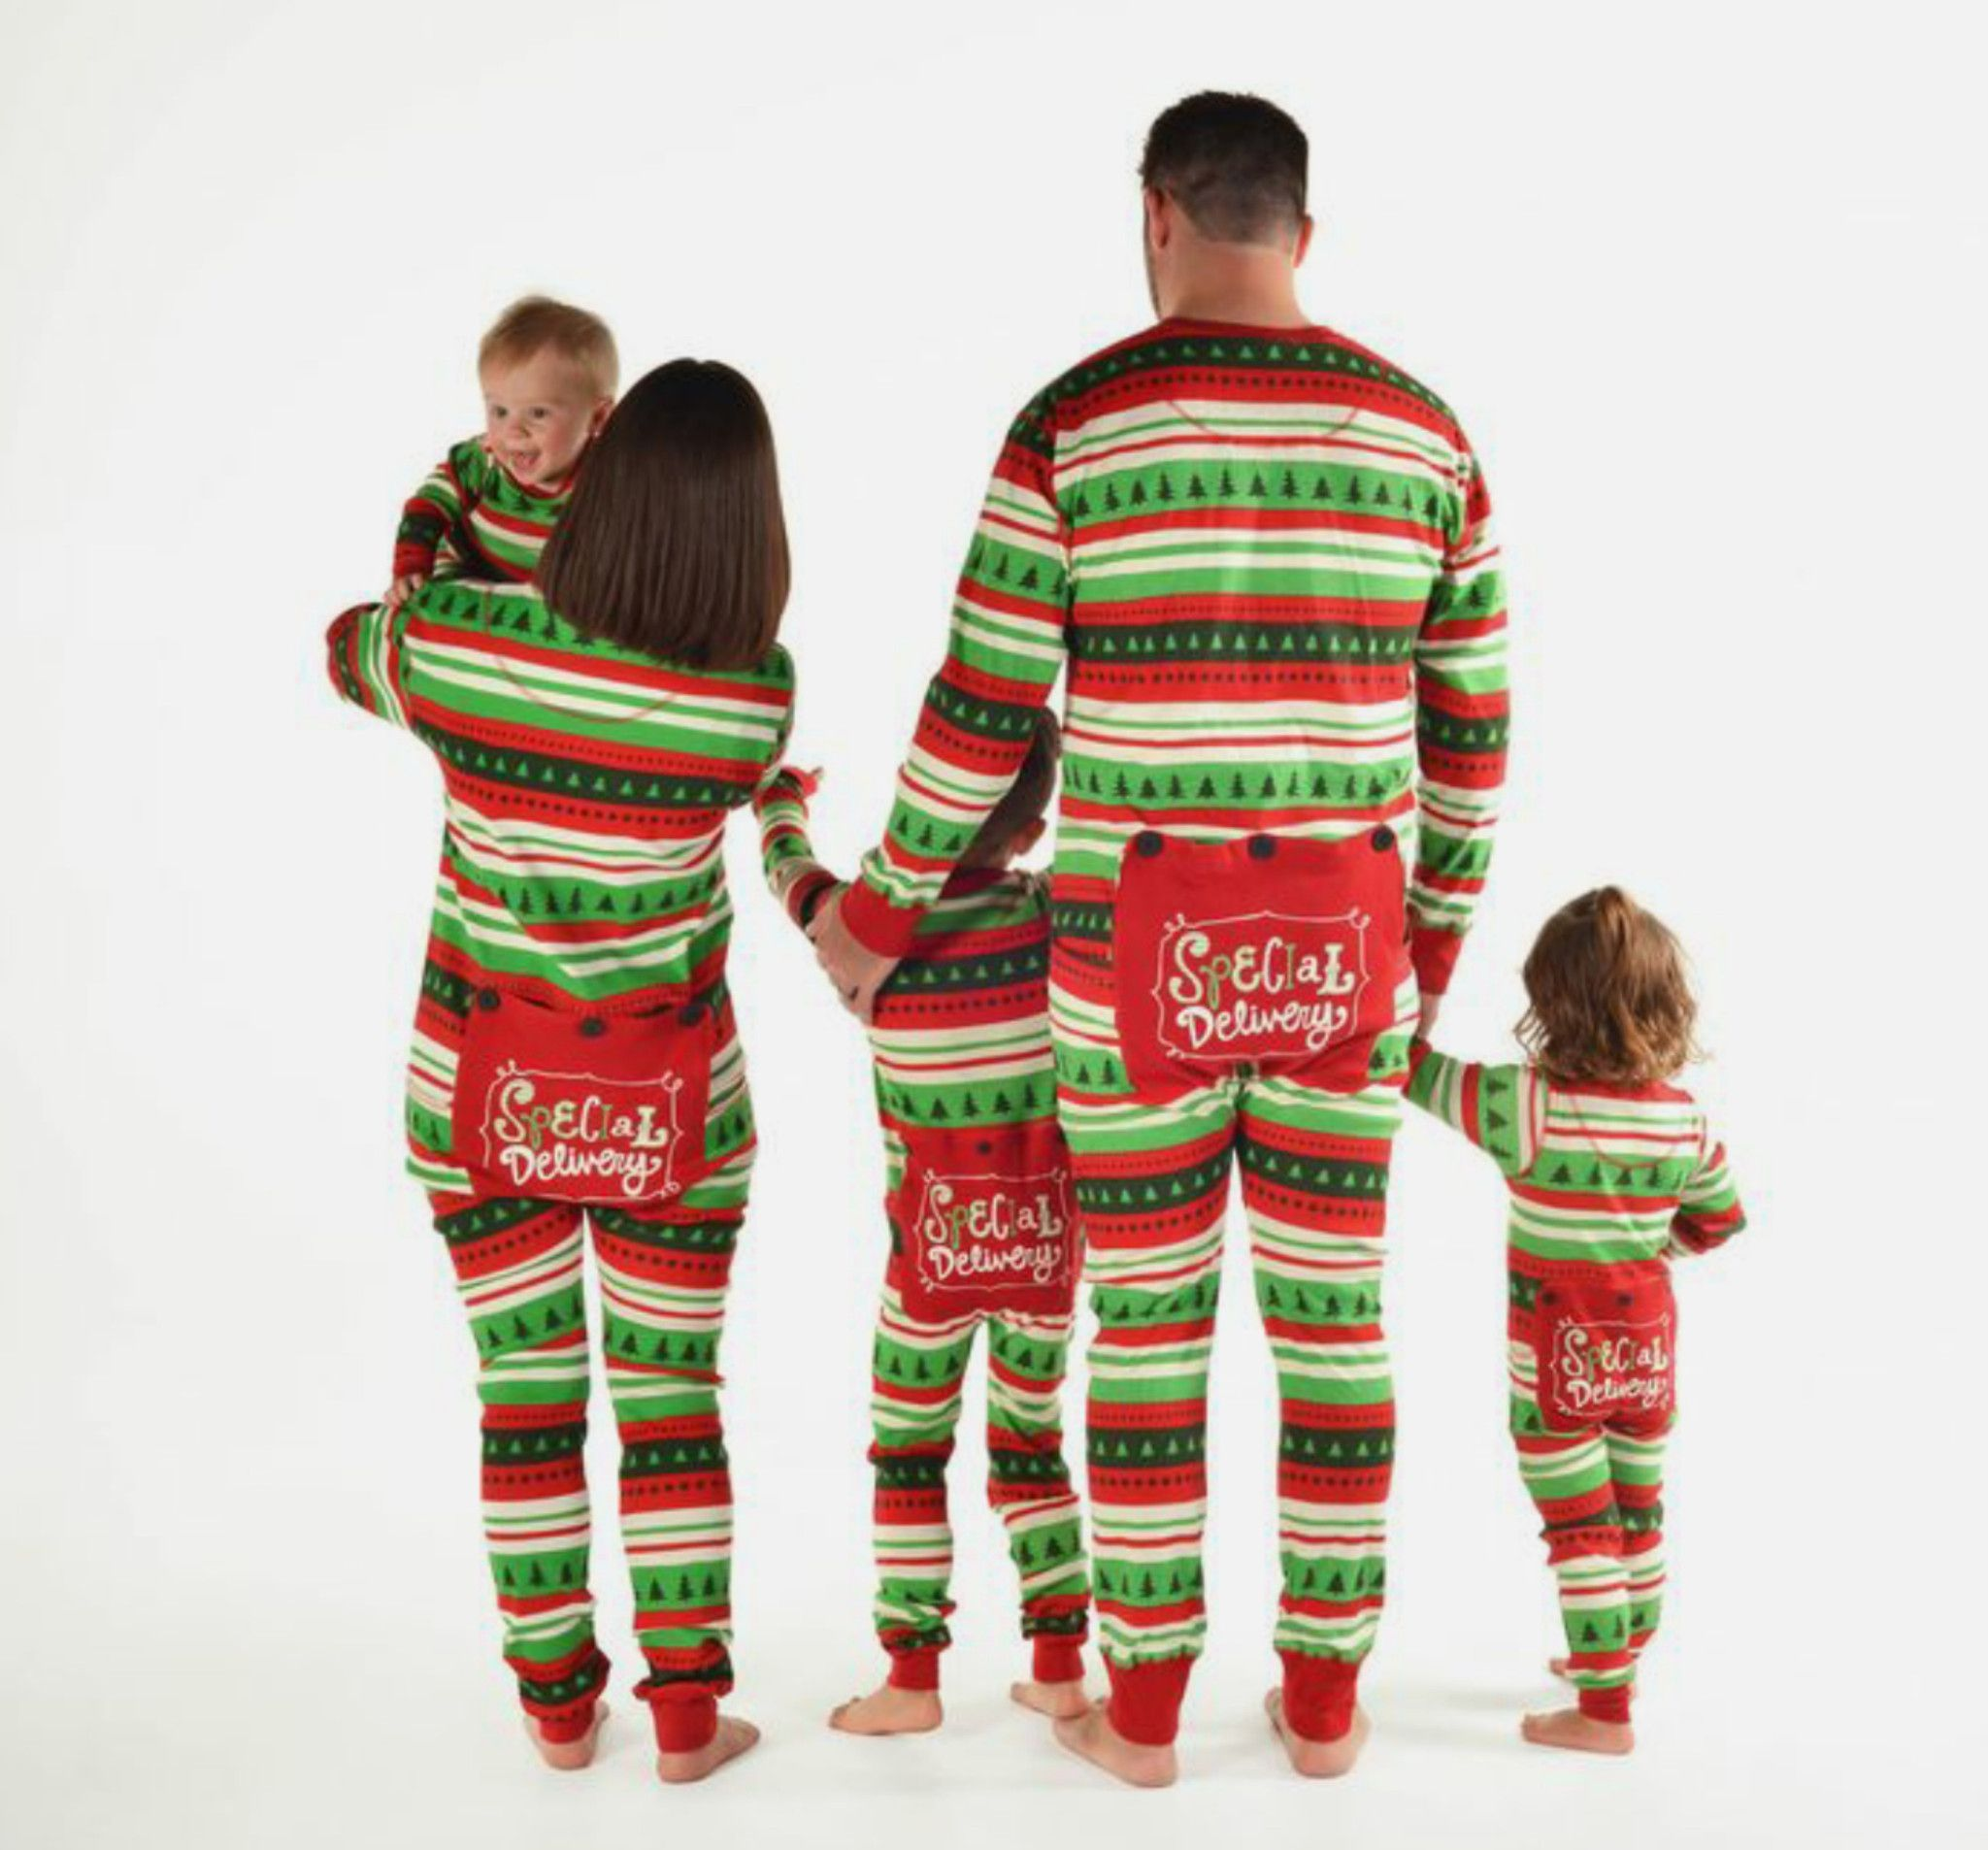 adorable matching christmas pjs for the whole family redgreenspecial delivery matching onesies flapjackschristmas morning infanttoddler kids adult